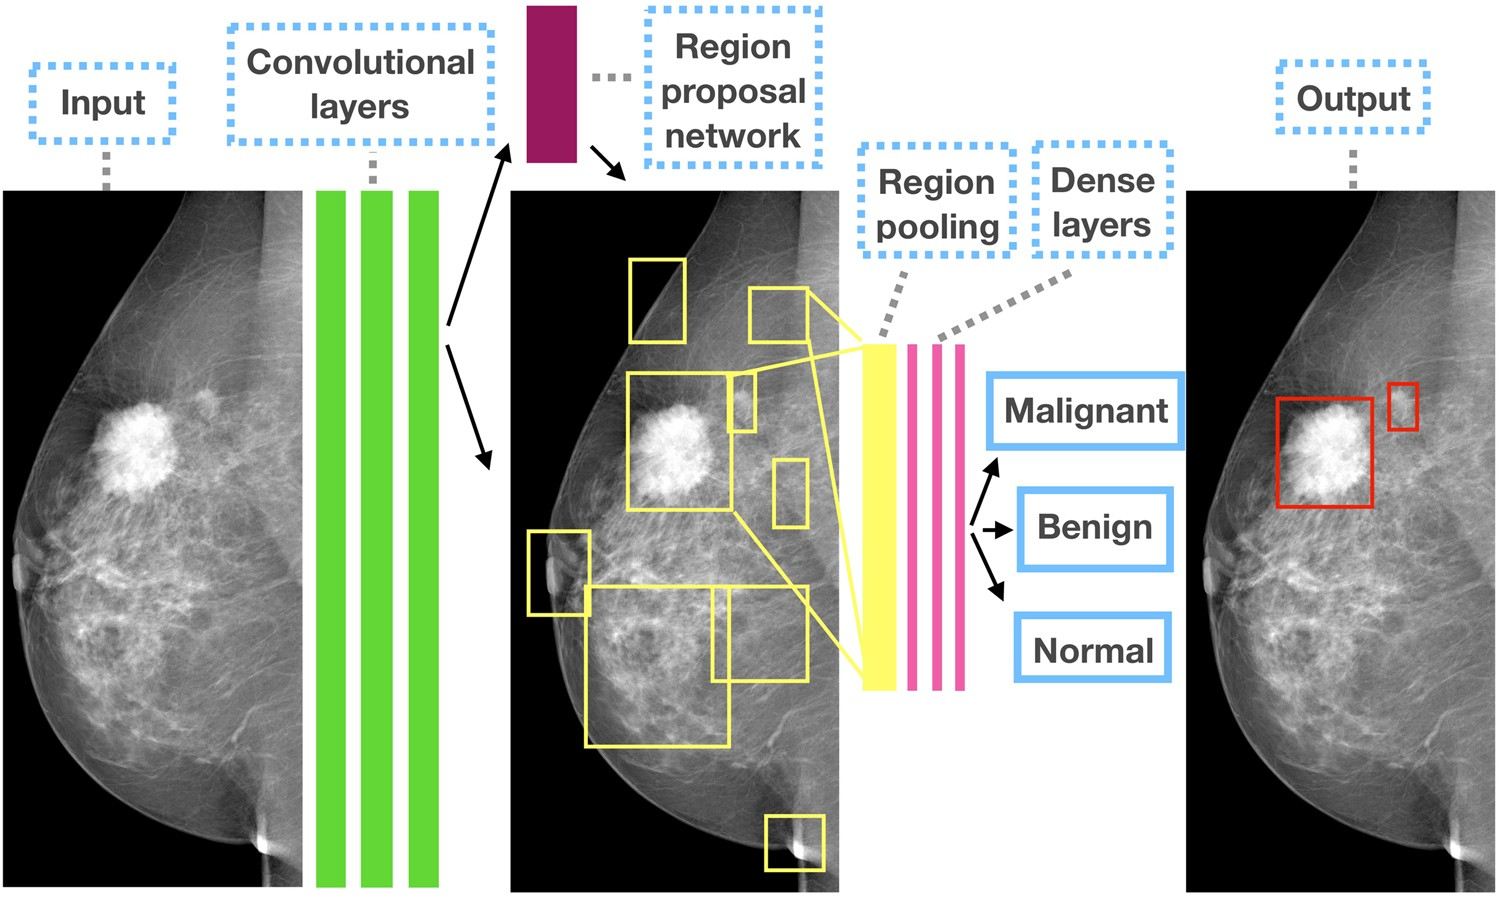 Detecting and classifying lesions in mammograms with Deep